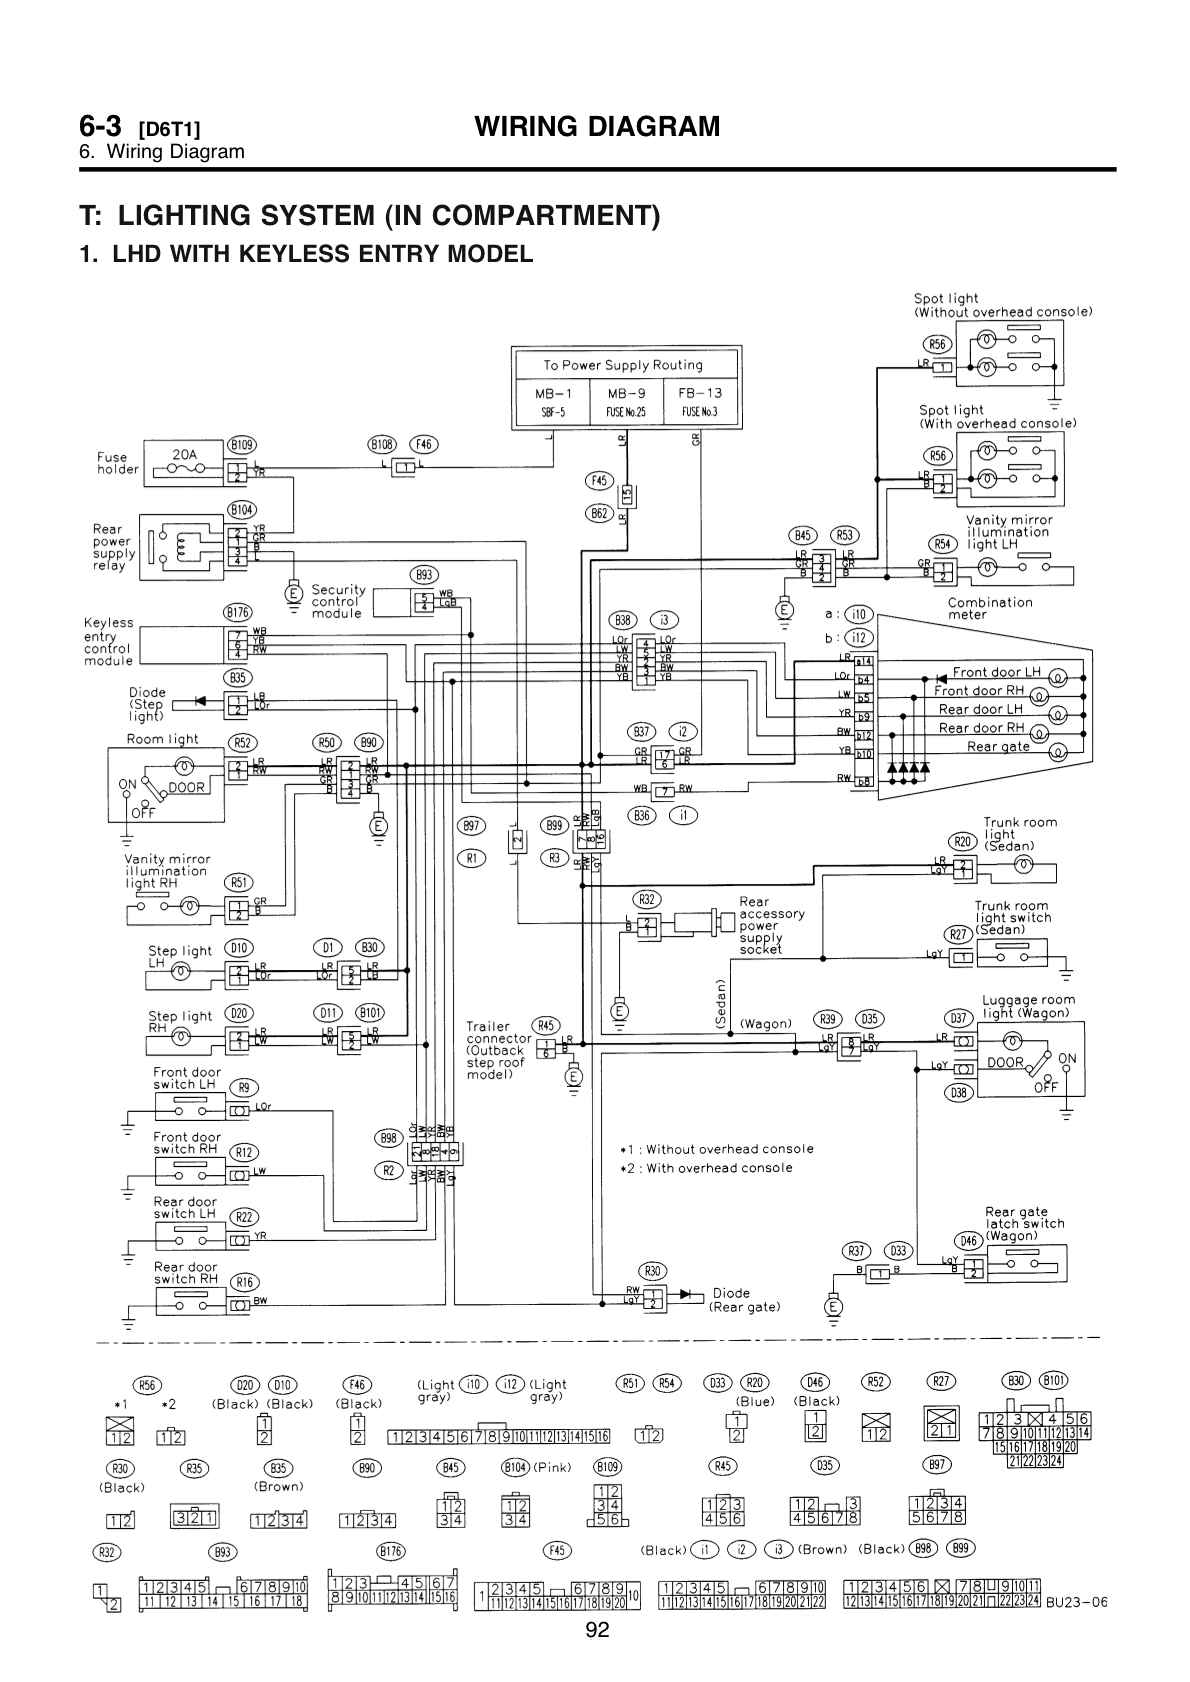 2008 subaru legacy wiring diagram wiring diagram schematics rh  readinghypnotherapist co uk Subaru Legacy Wiring Harness Diagram Subaru  Alternator Wiring ...